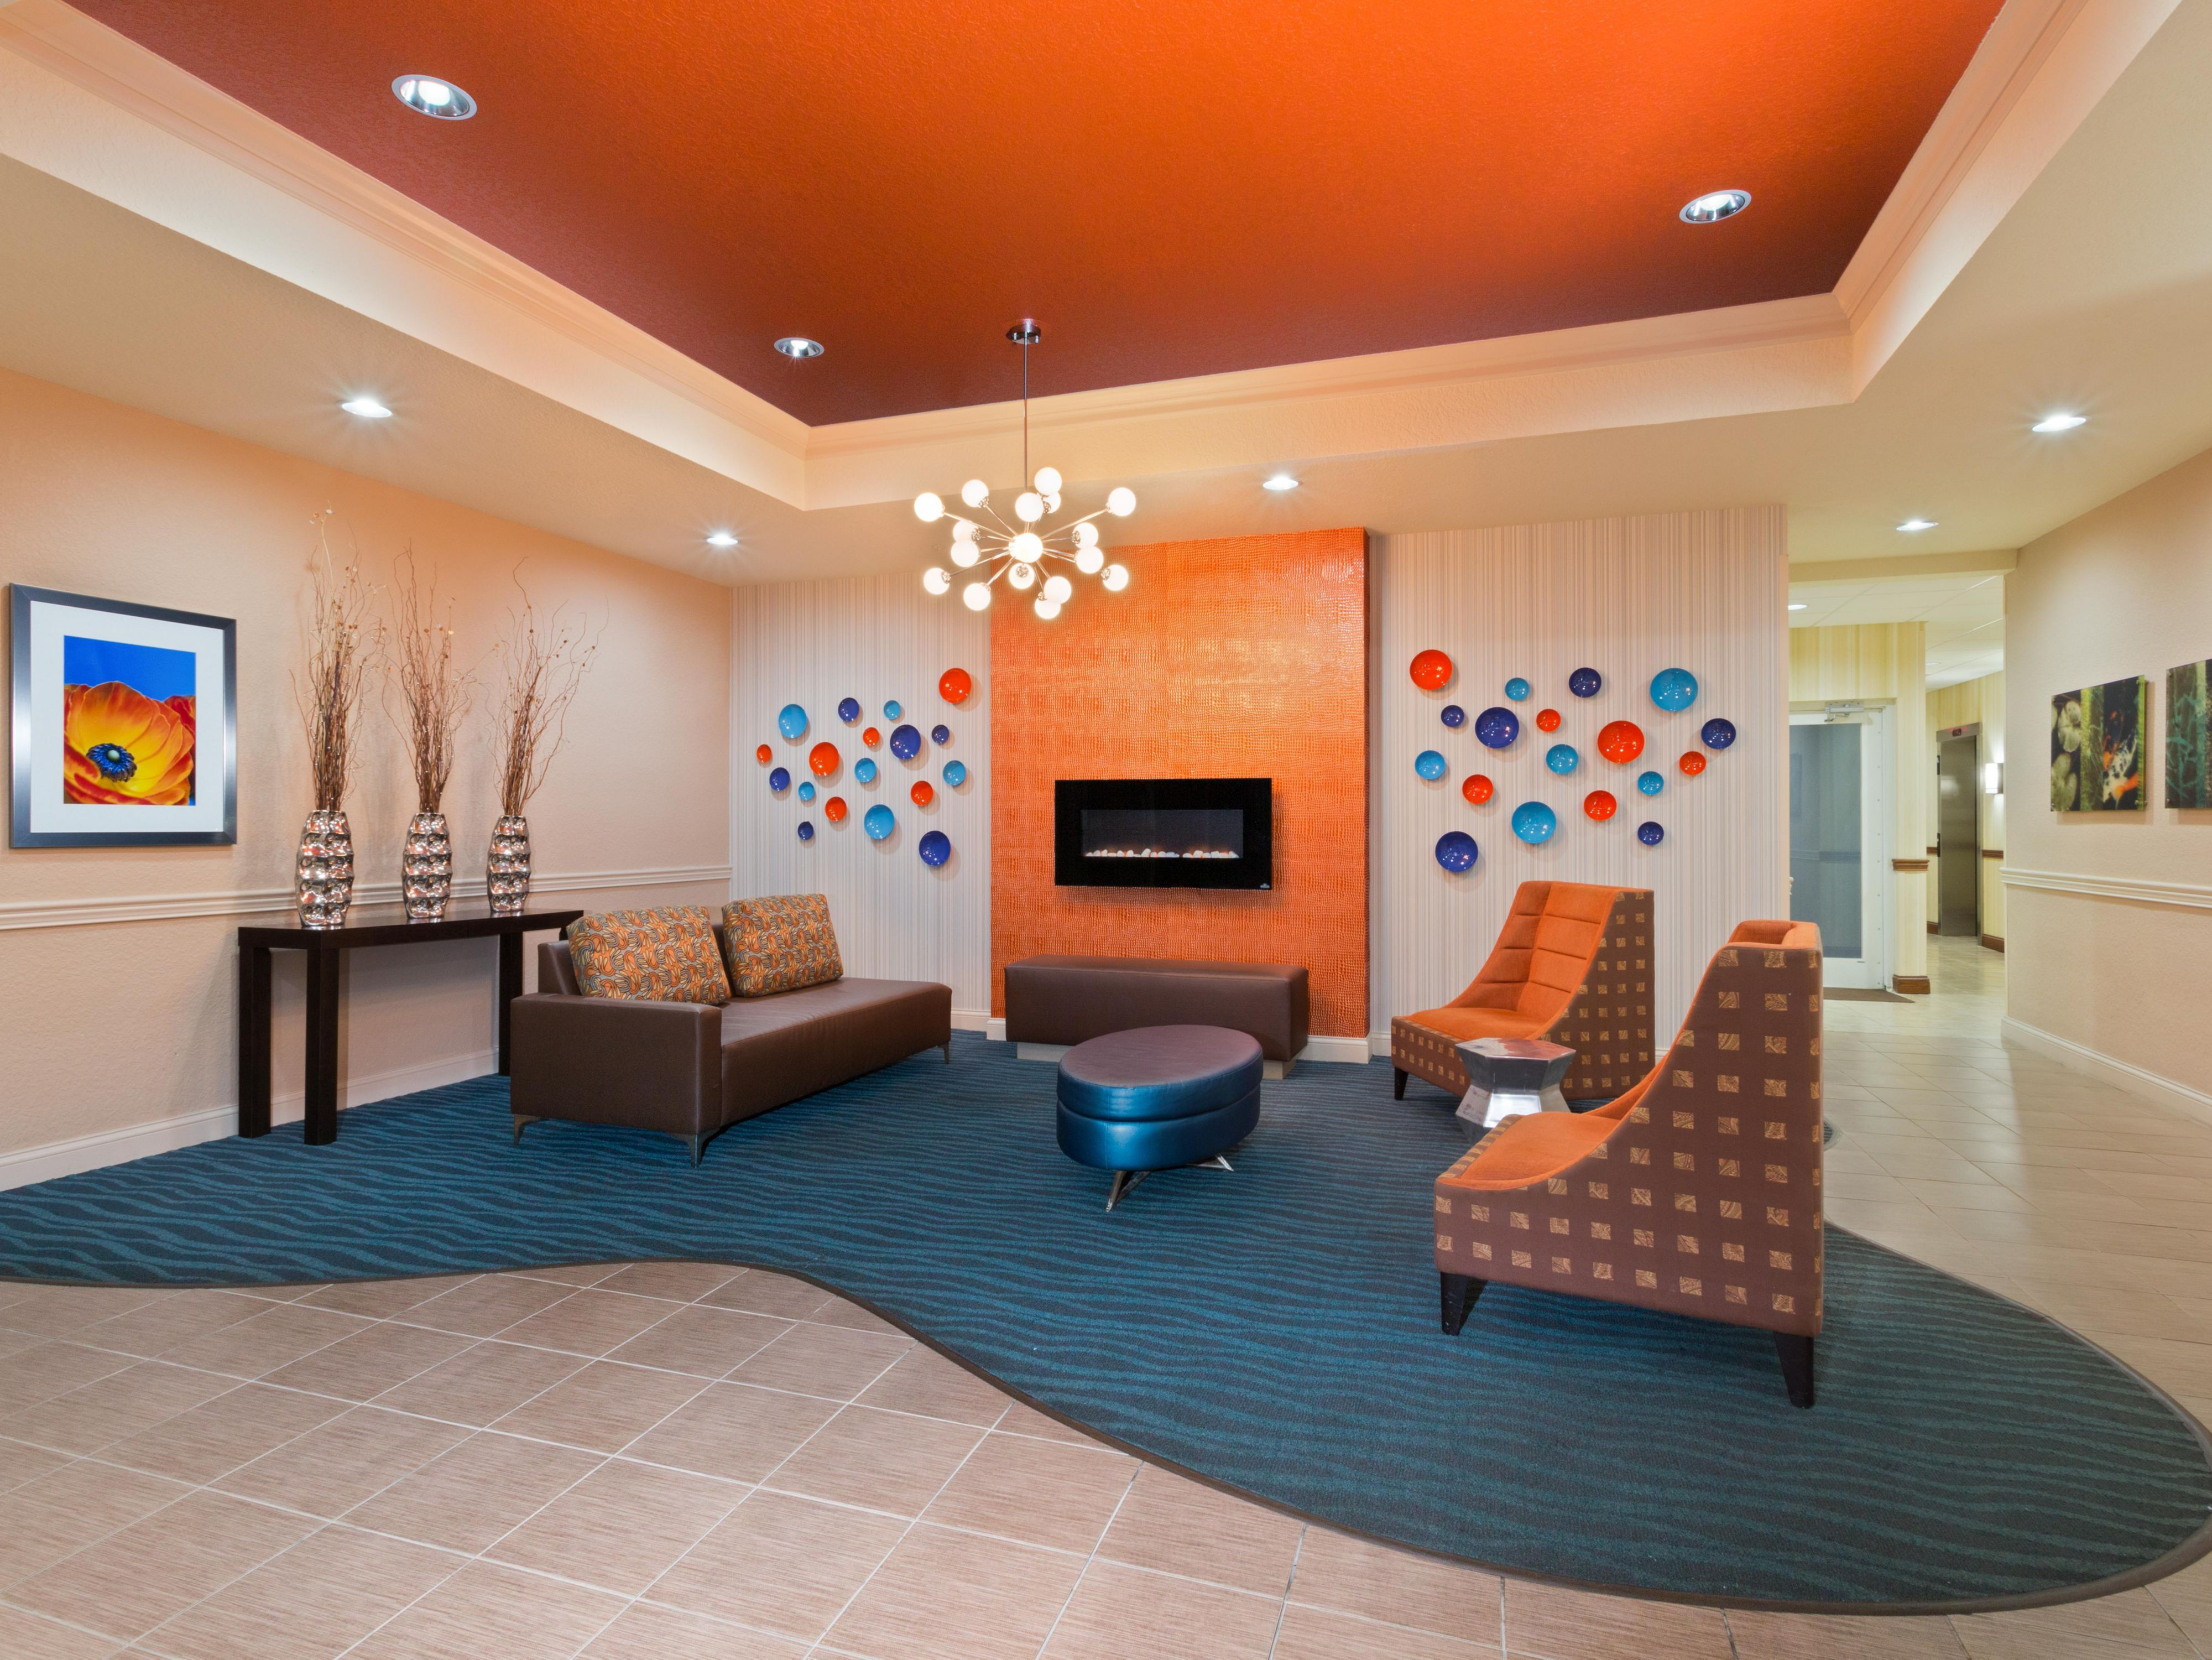 Our lobby is a great place to mingle with friends and family.